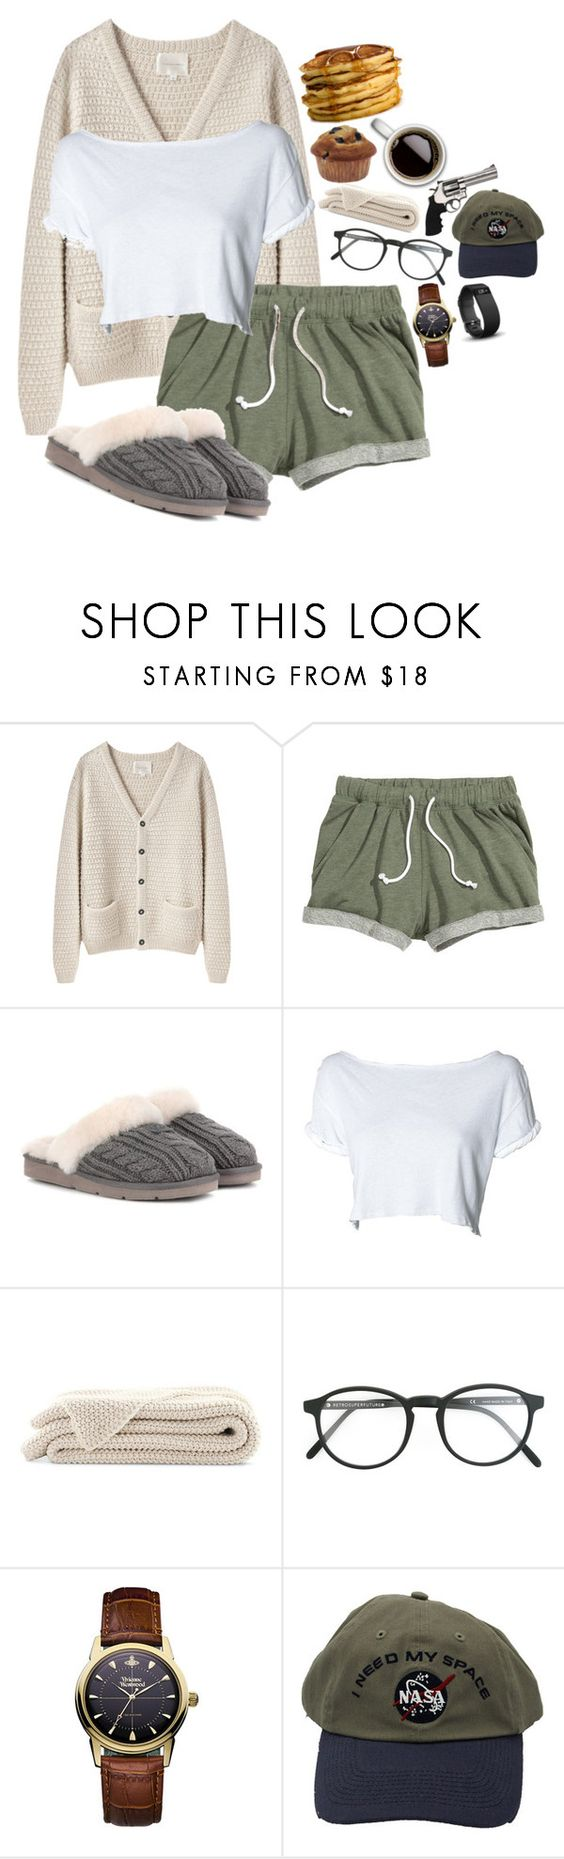 """""""Kristen Costello"""" by darlingzombie ❤ liked on Polyvore featuring La Garçonne Moderne, UGG, RetroSuperFuture, Revolver, Vivienne Westwood and Fitbit"""